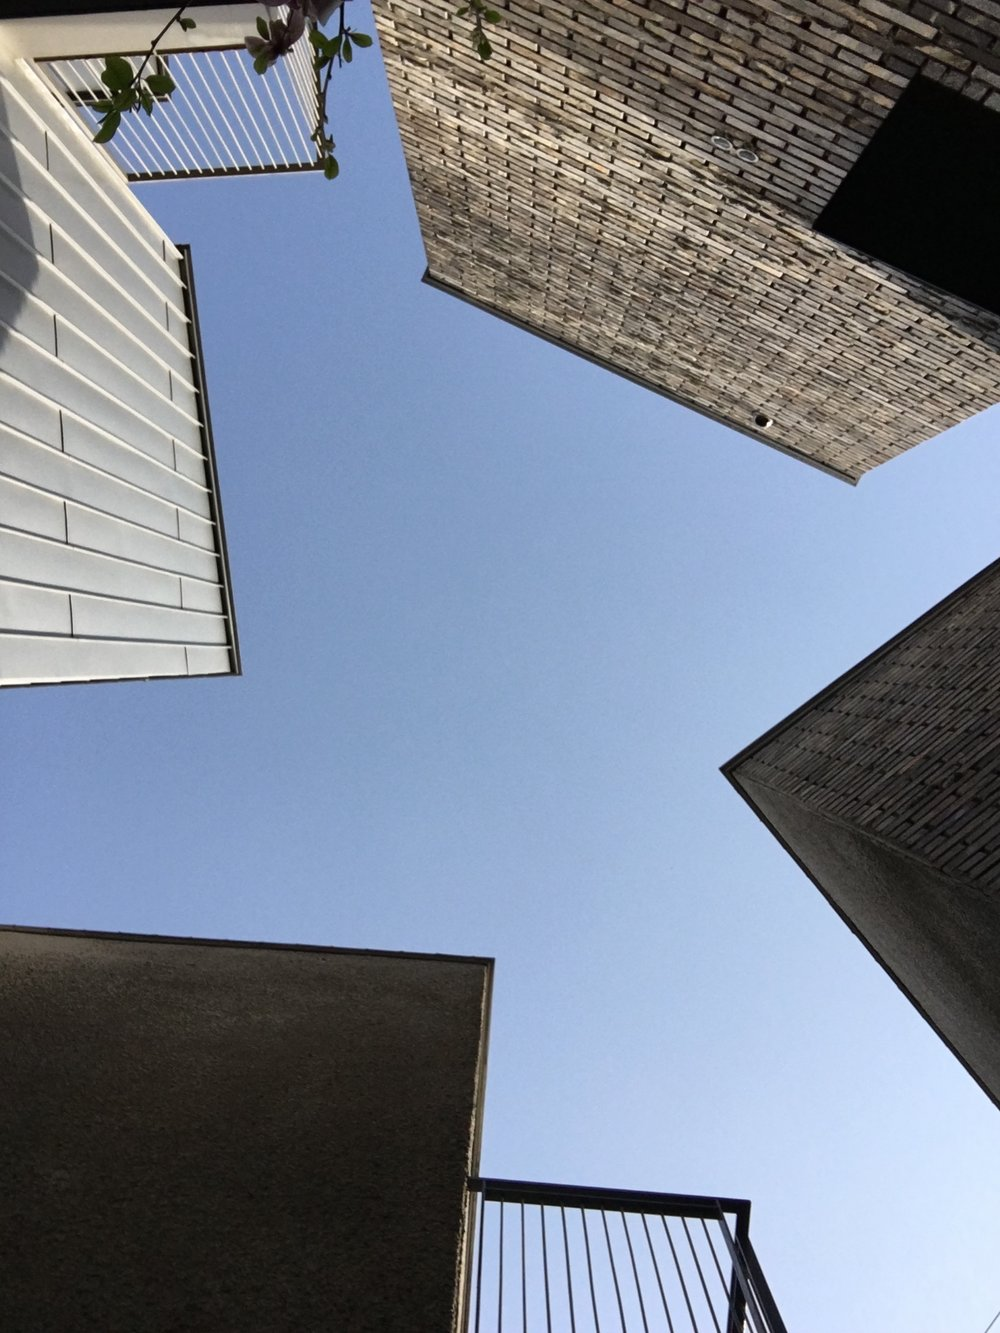 Looking up to the amazing negative space made by the buildings of Inside Busan Hostel.